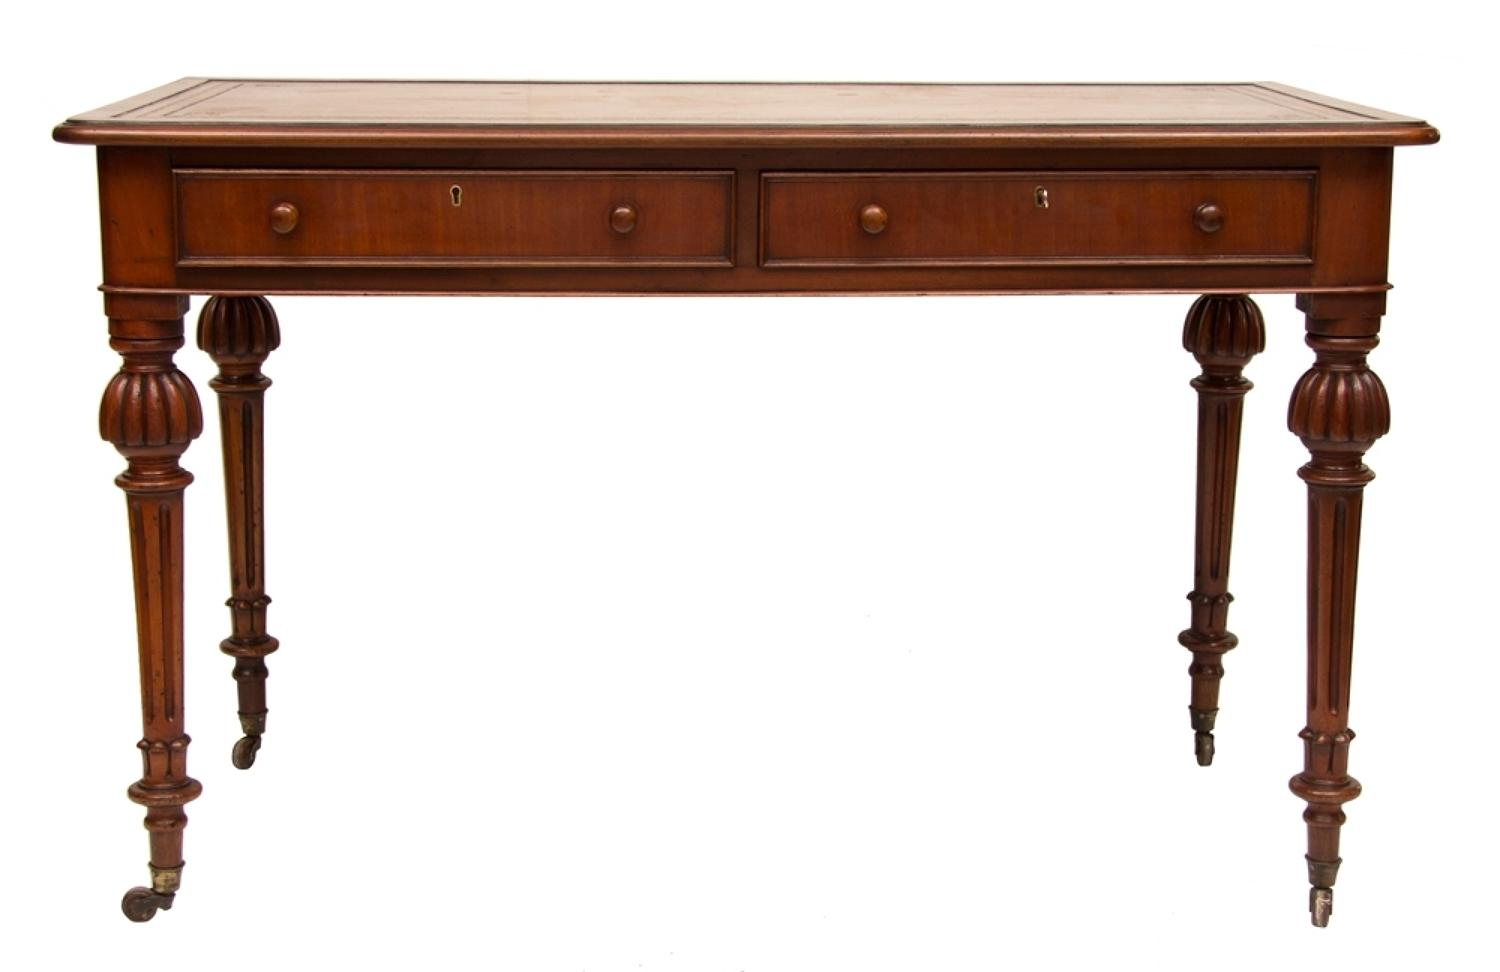 A Victorian Mahogany 2 Drawer writing table with Fluted Legs on Caster